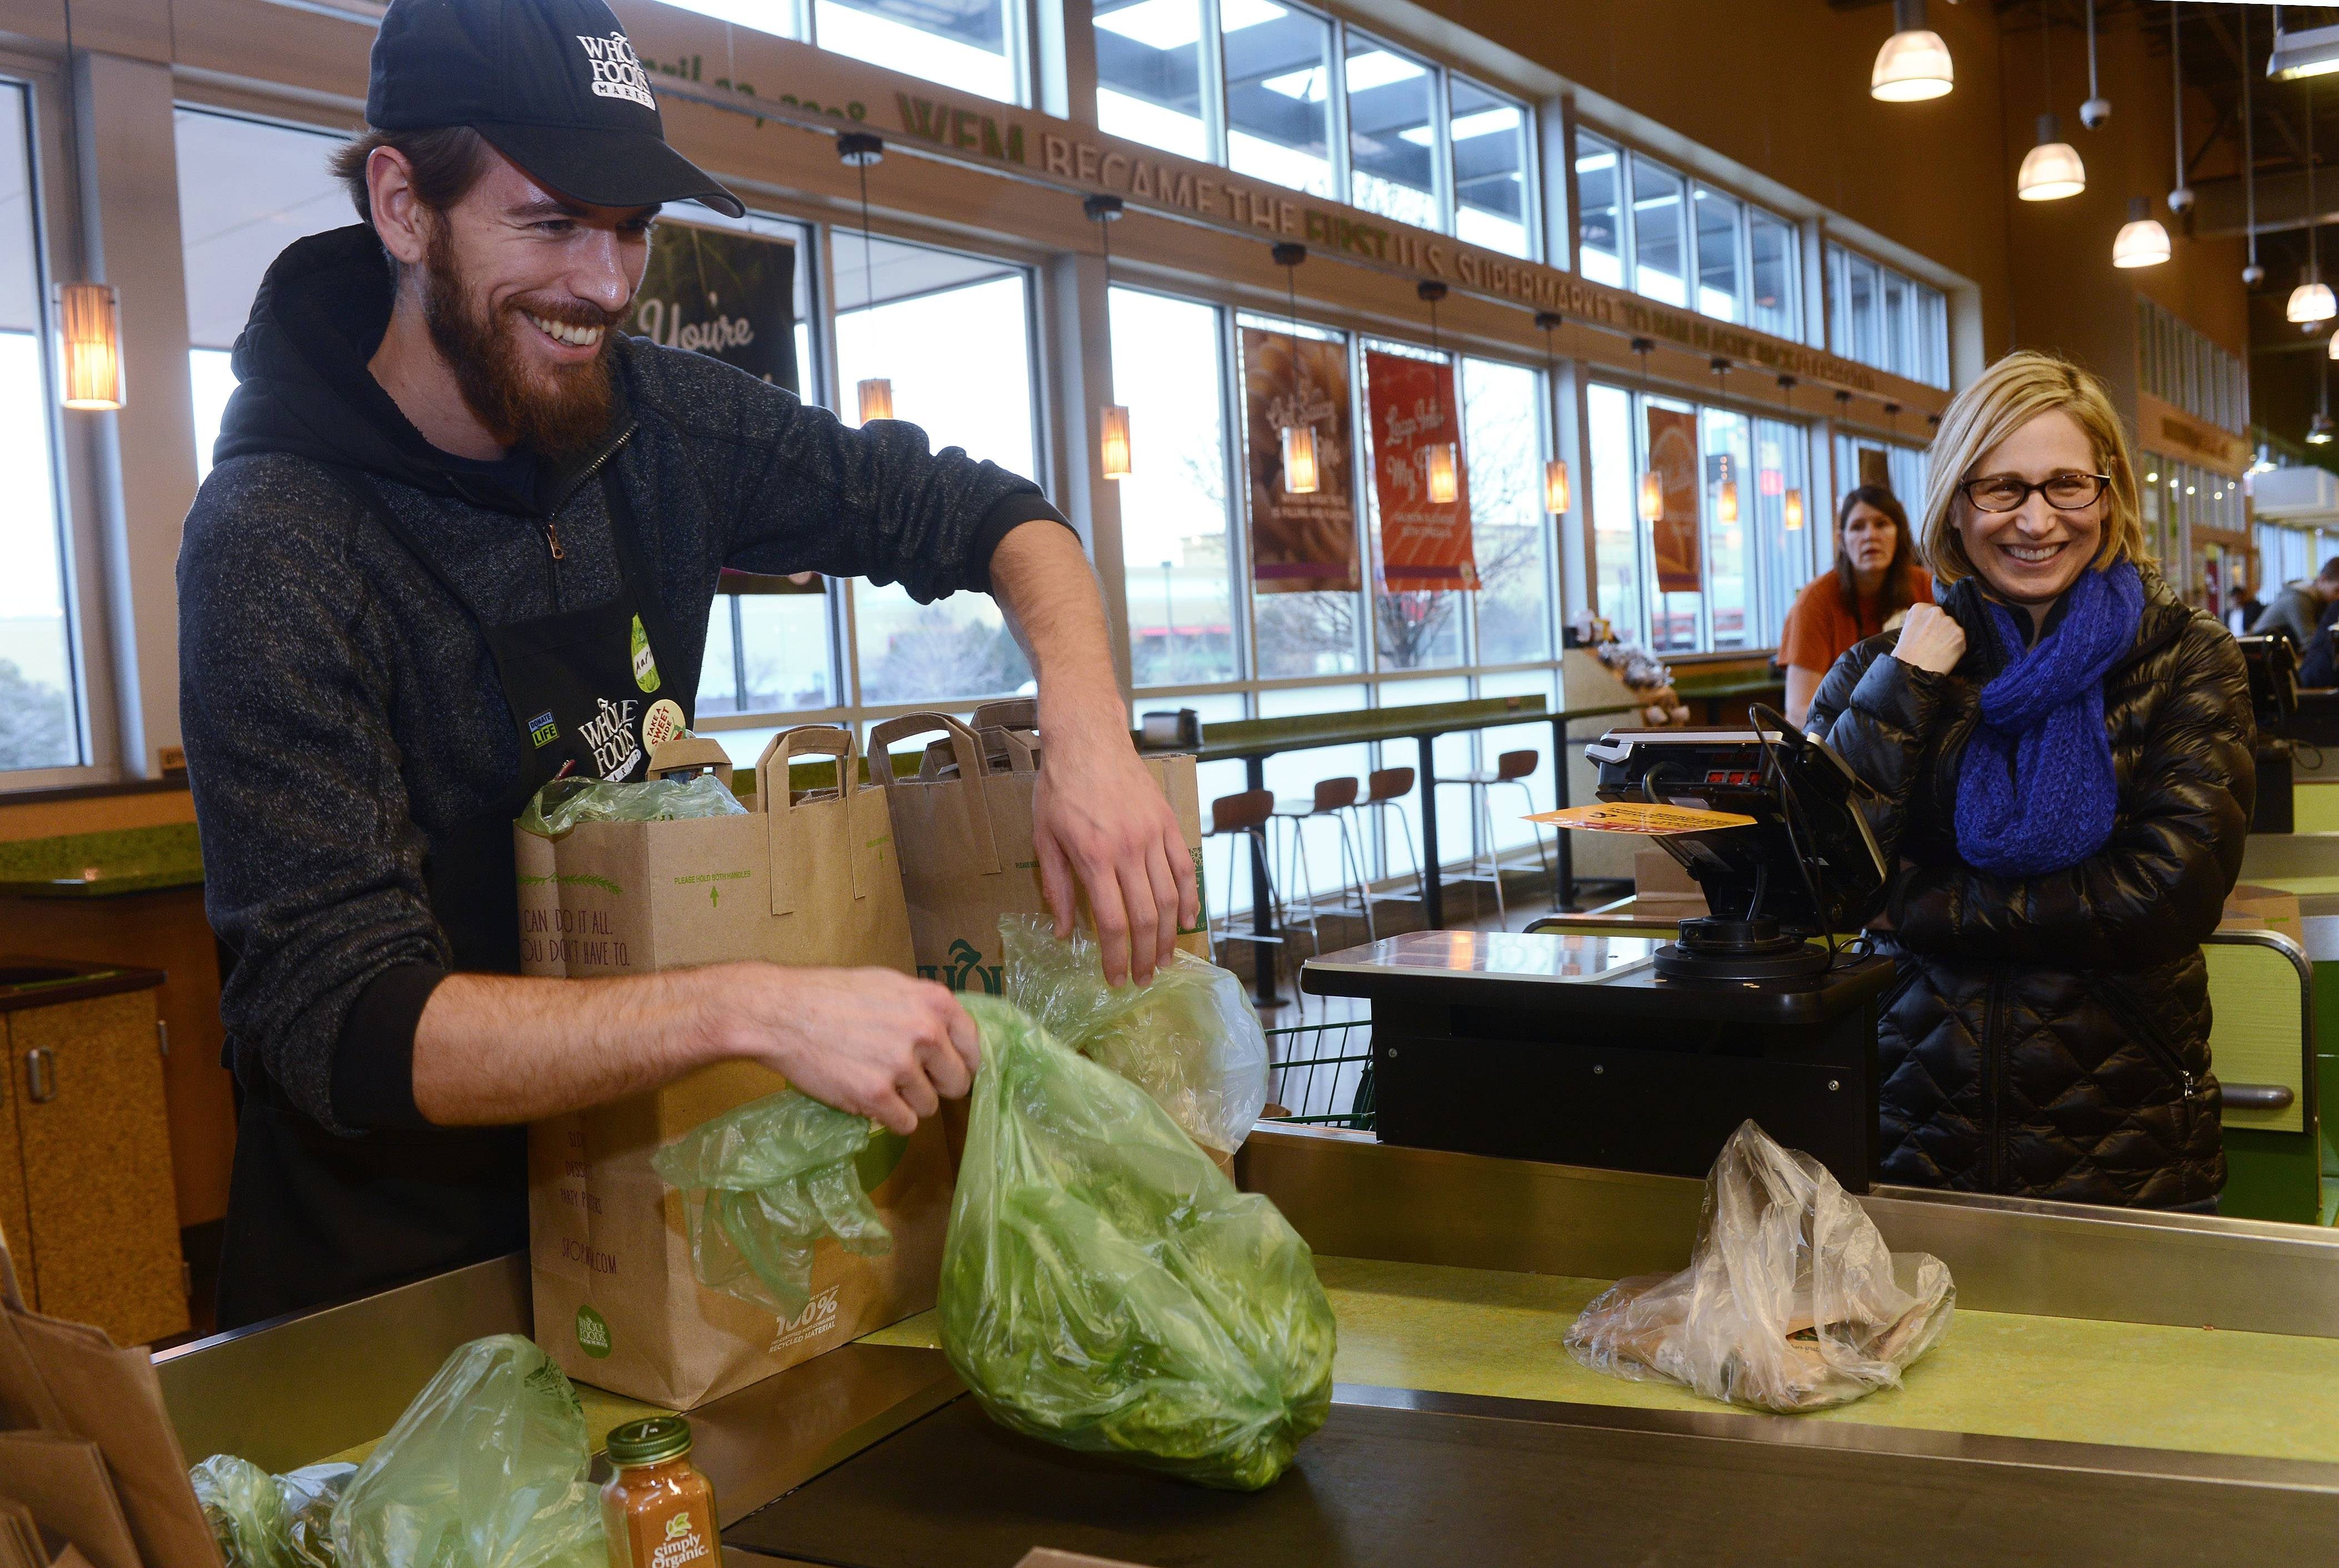 Activist wants Schaumburg to lead on reusable bags